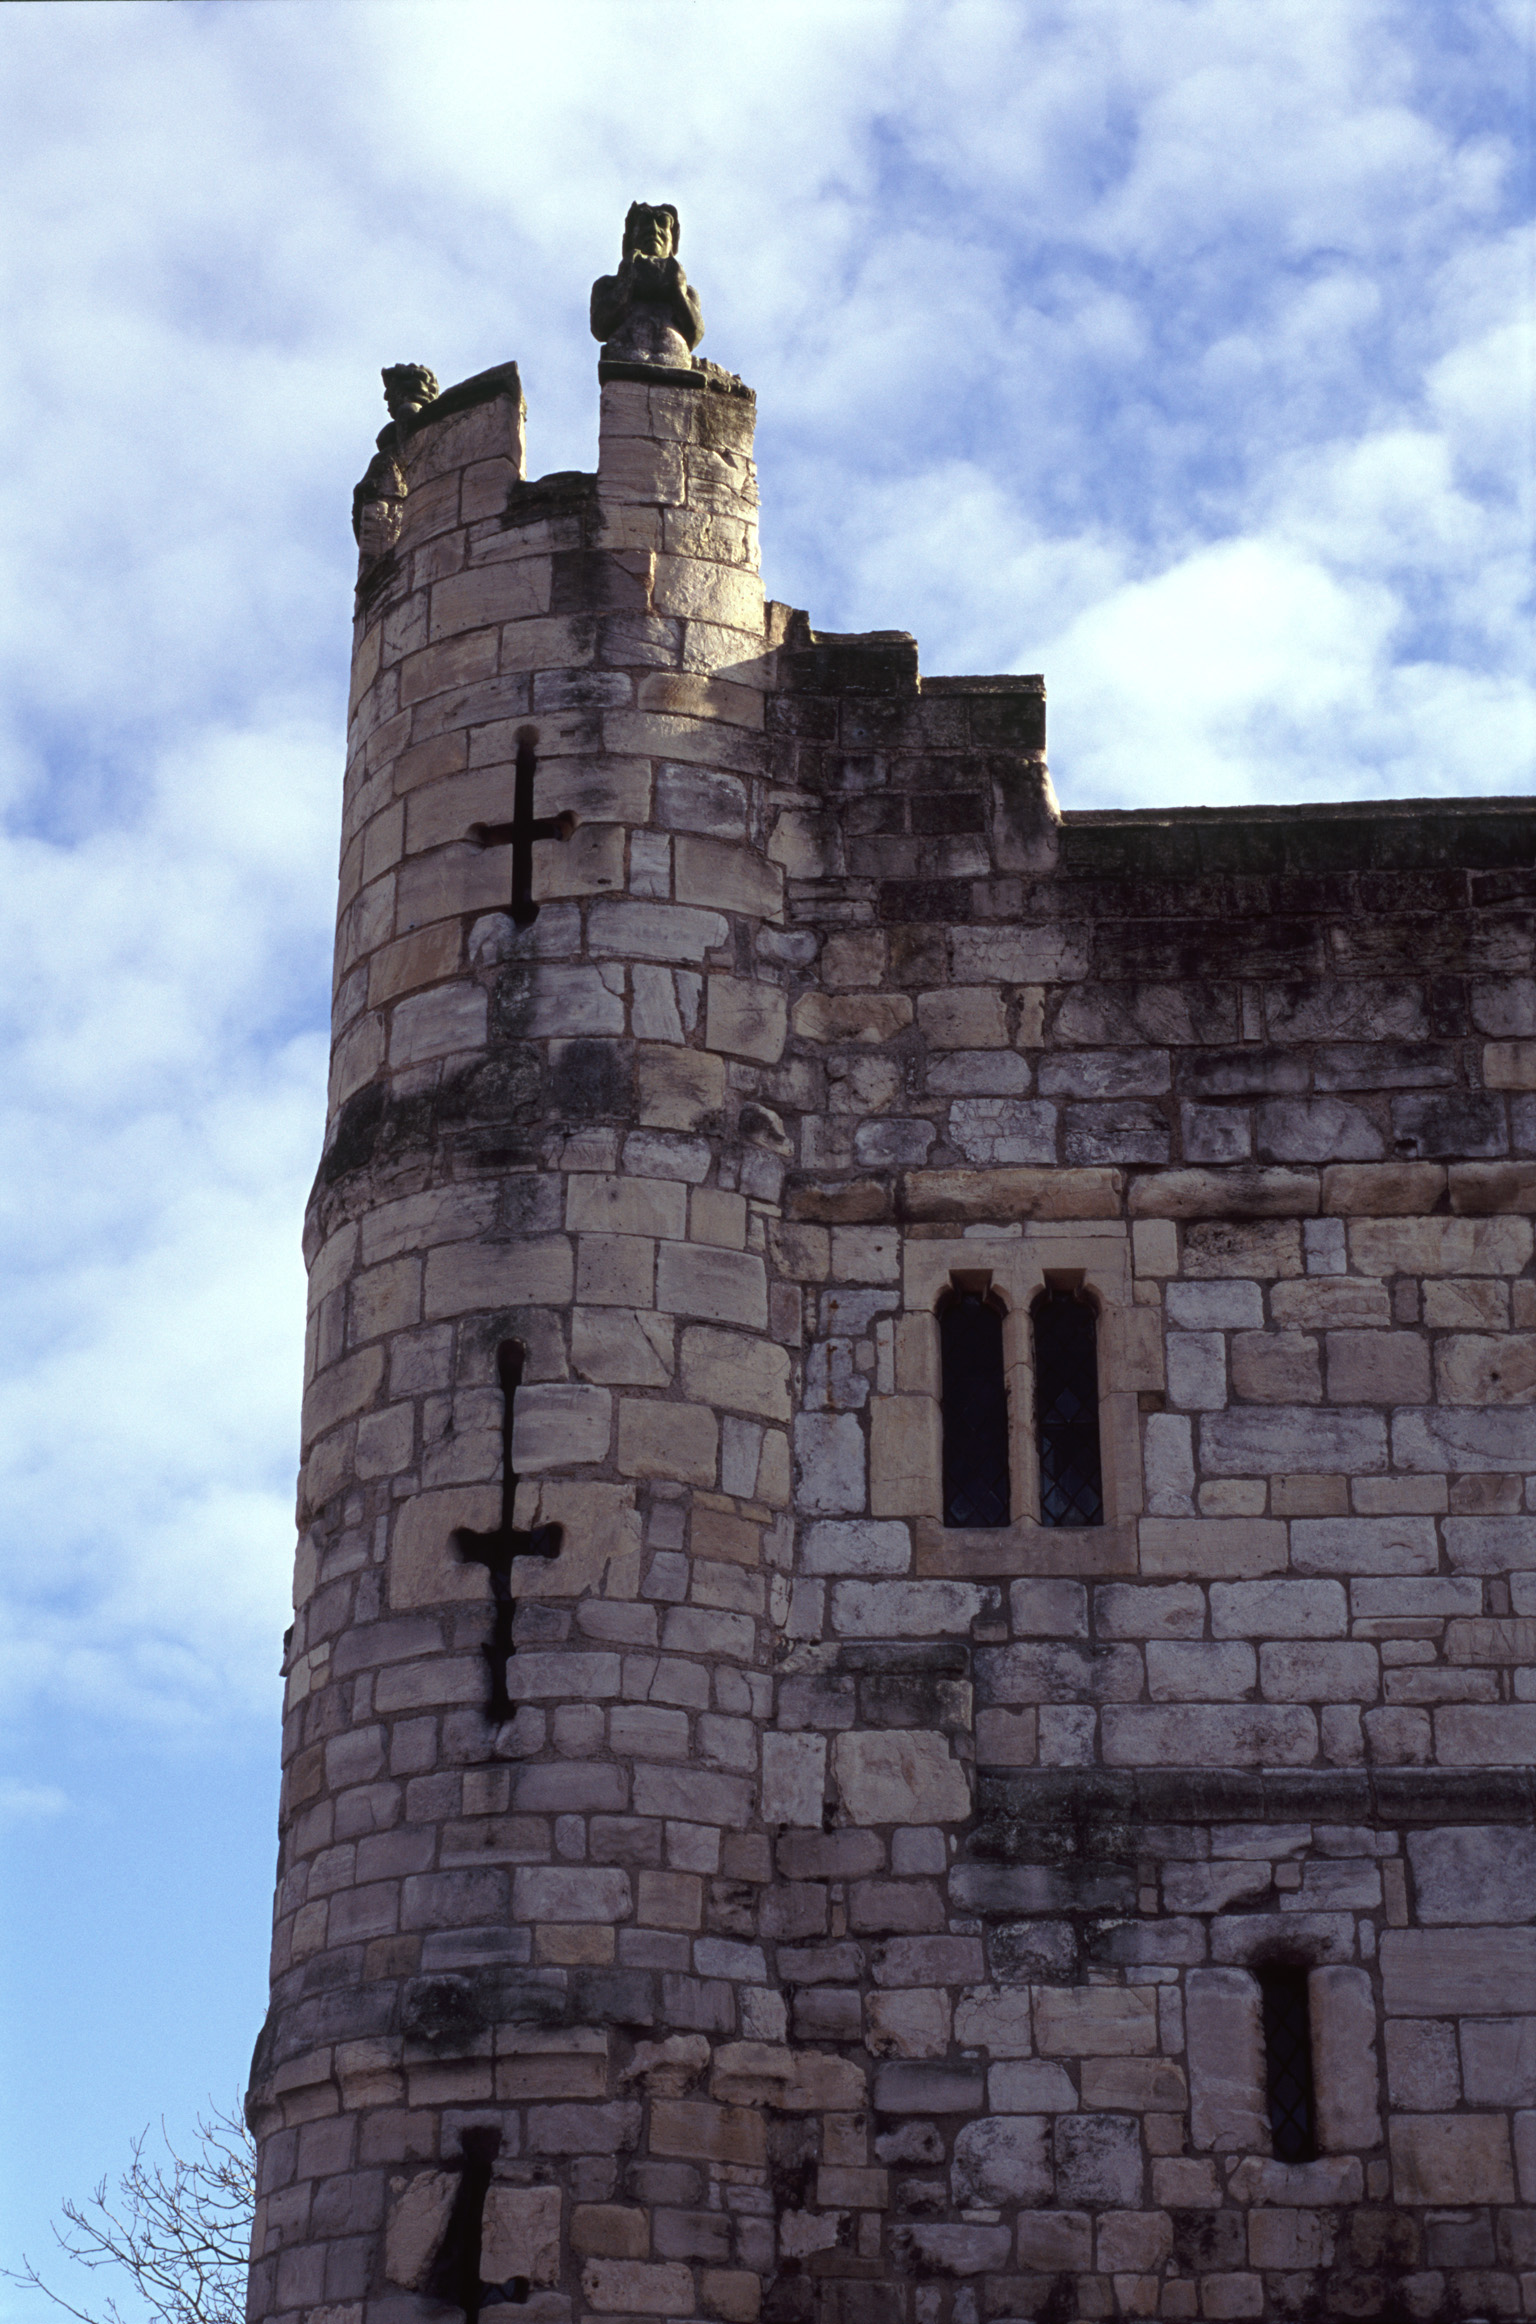 Fortified York bar with its narrow arrow holes in the circular crenellated tower of the gatehouse in York, UK